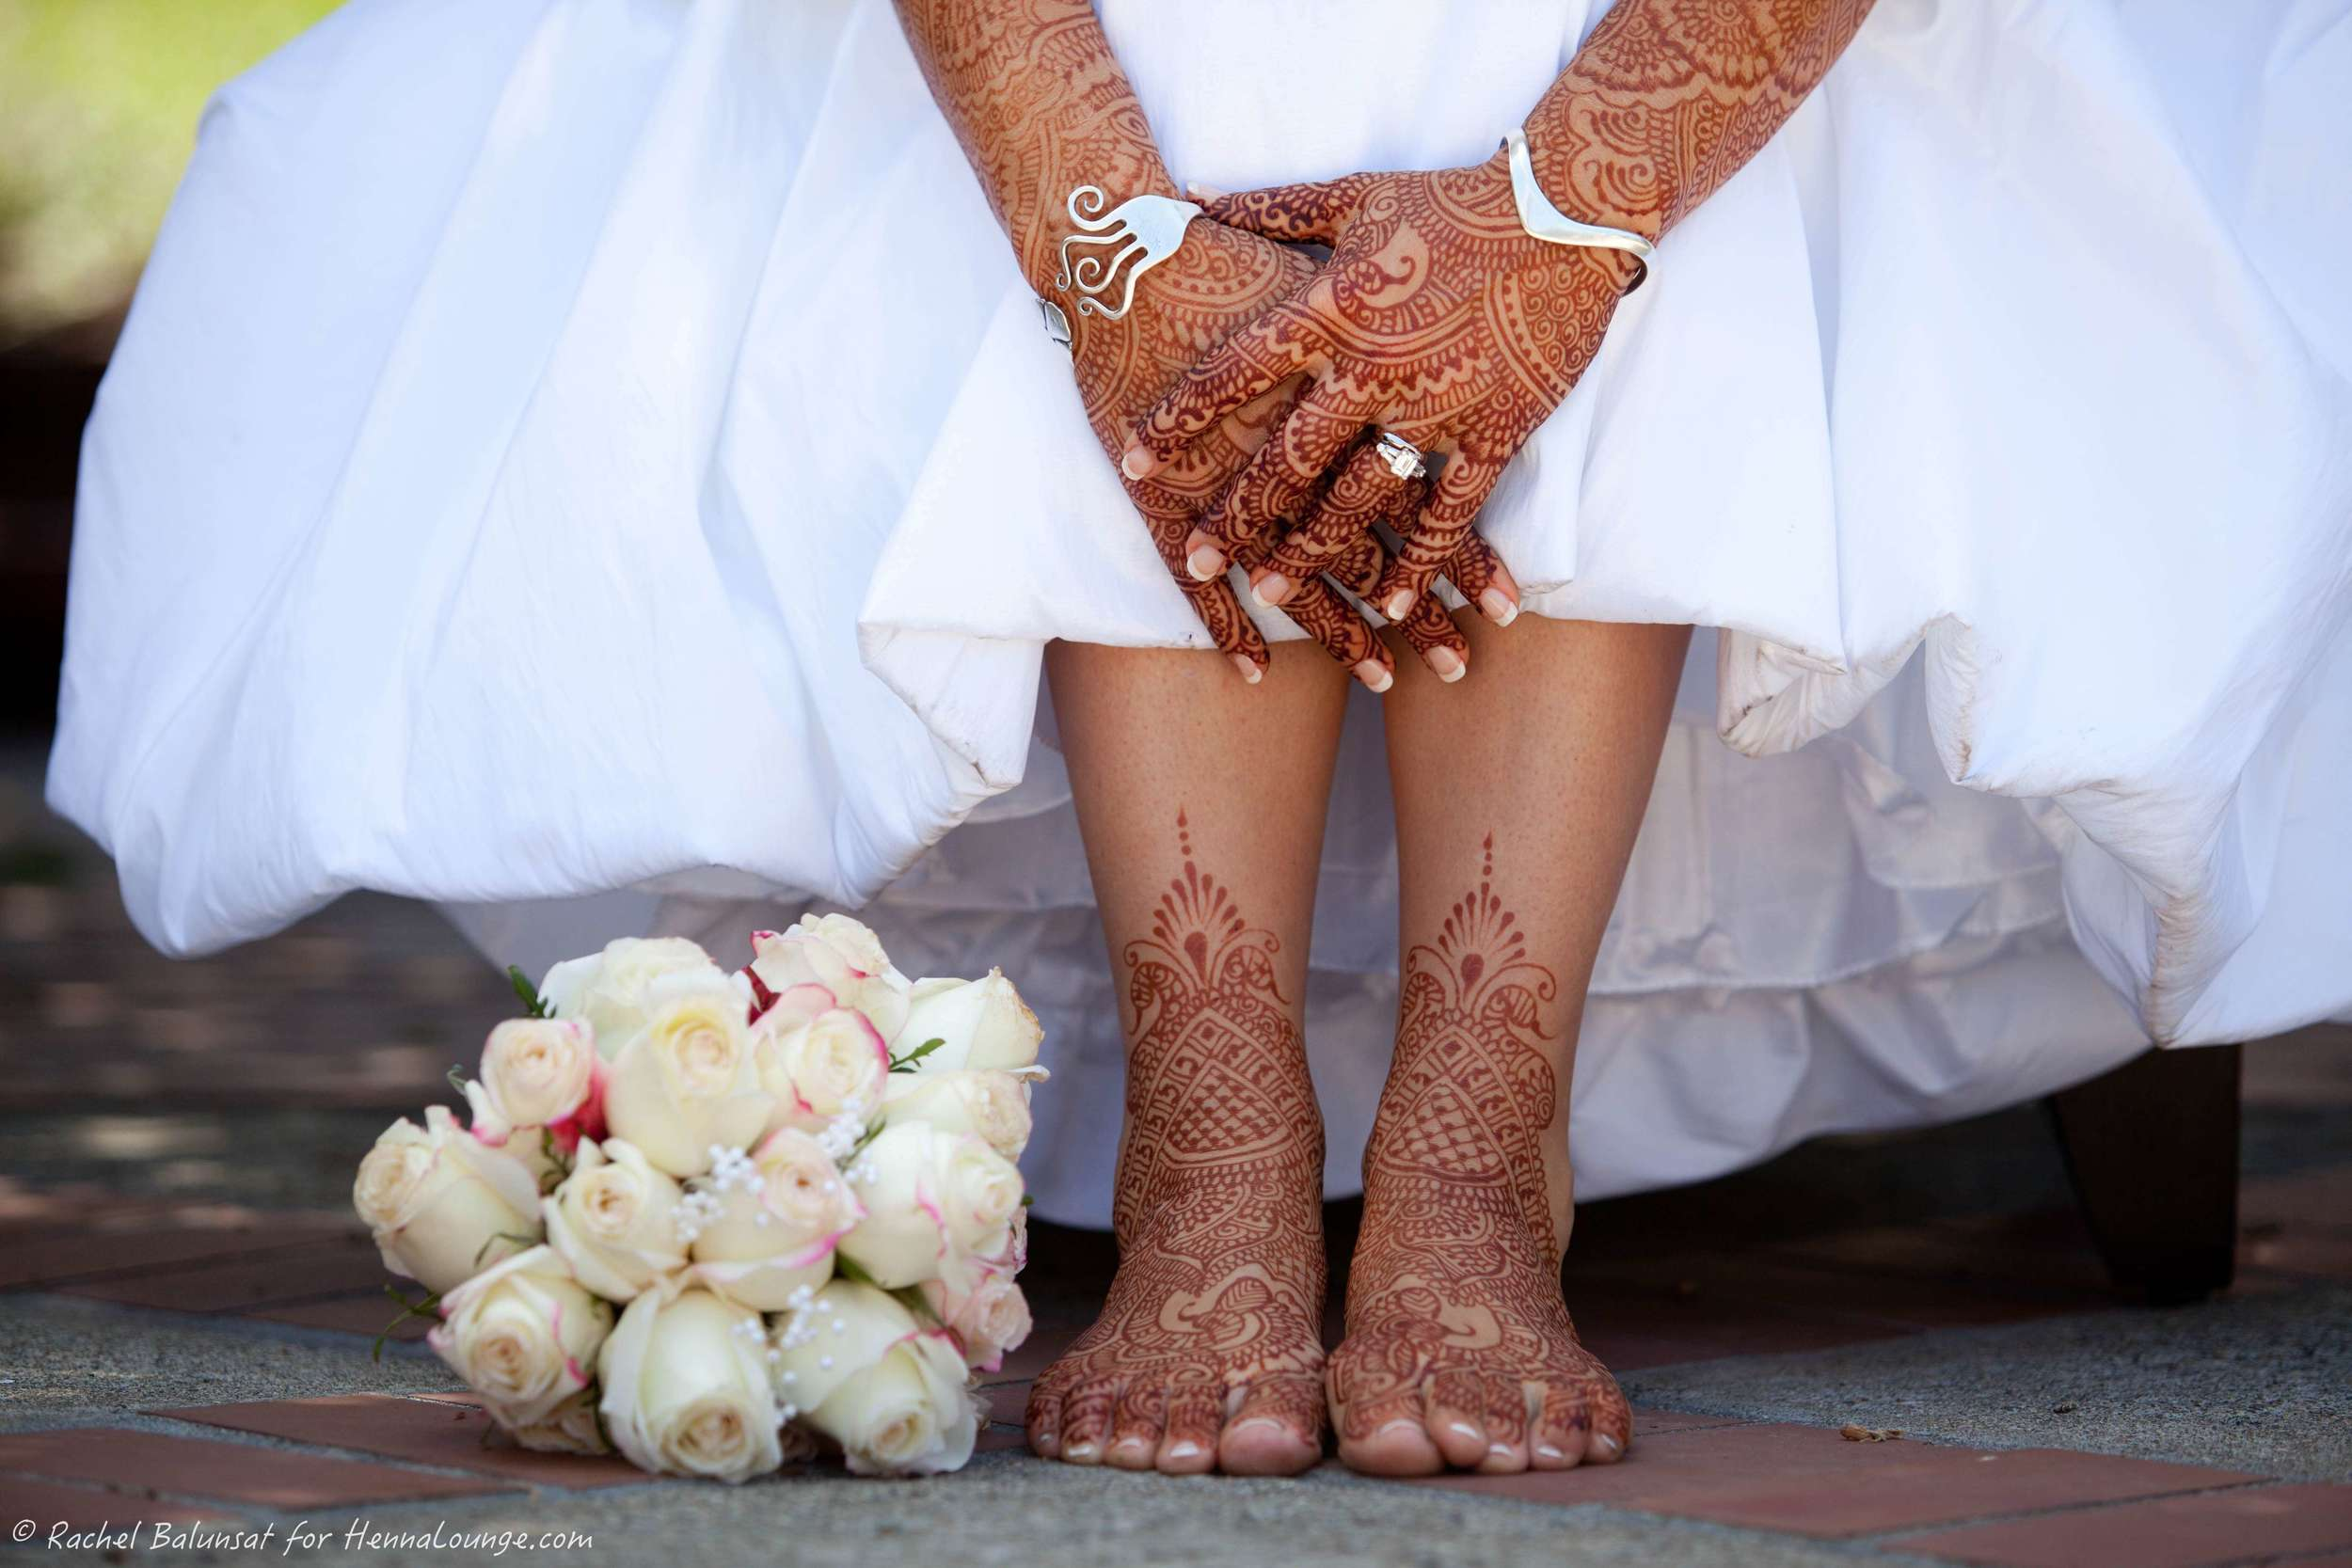 Henna takes the place of gloves or shoes in this Sonoma County wedding. Photo by Rachel Balunsat and henna by http://www.hennalounge.com